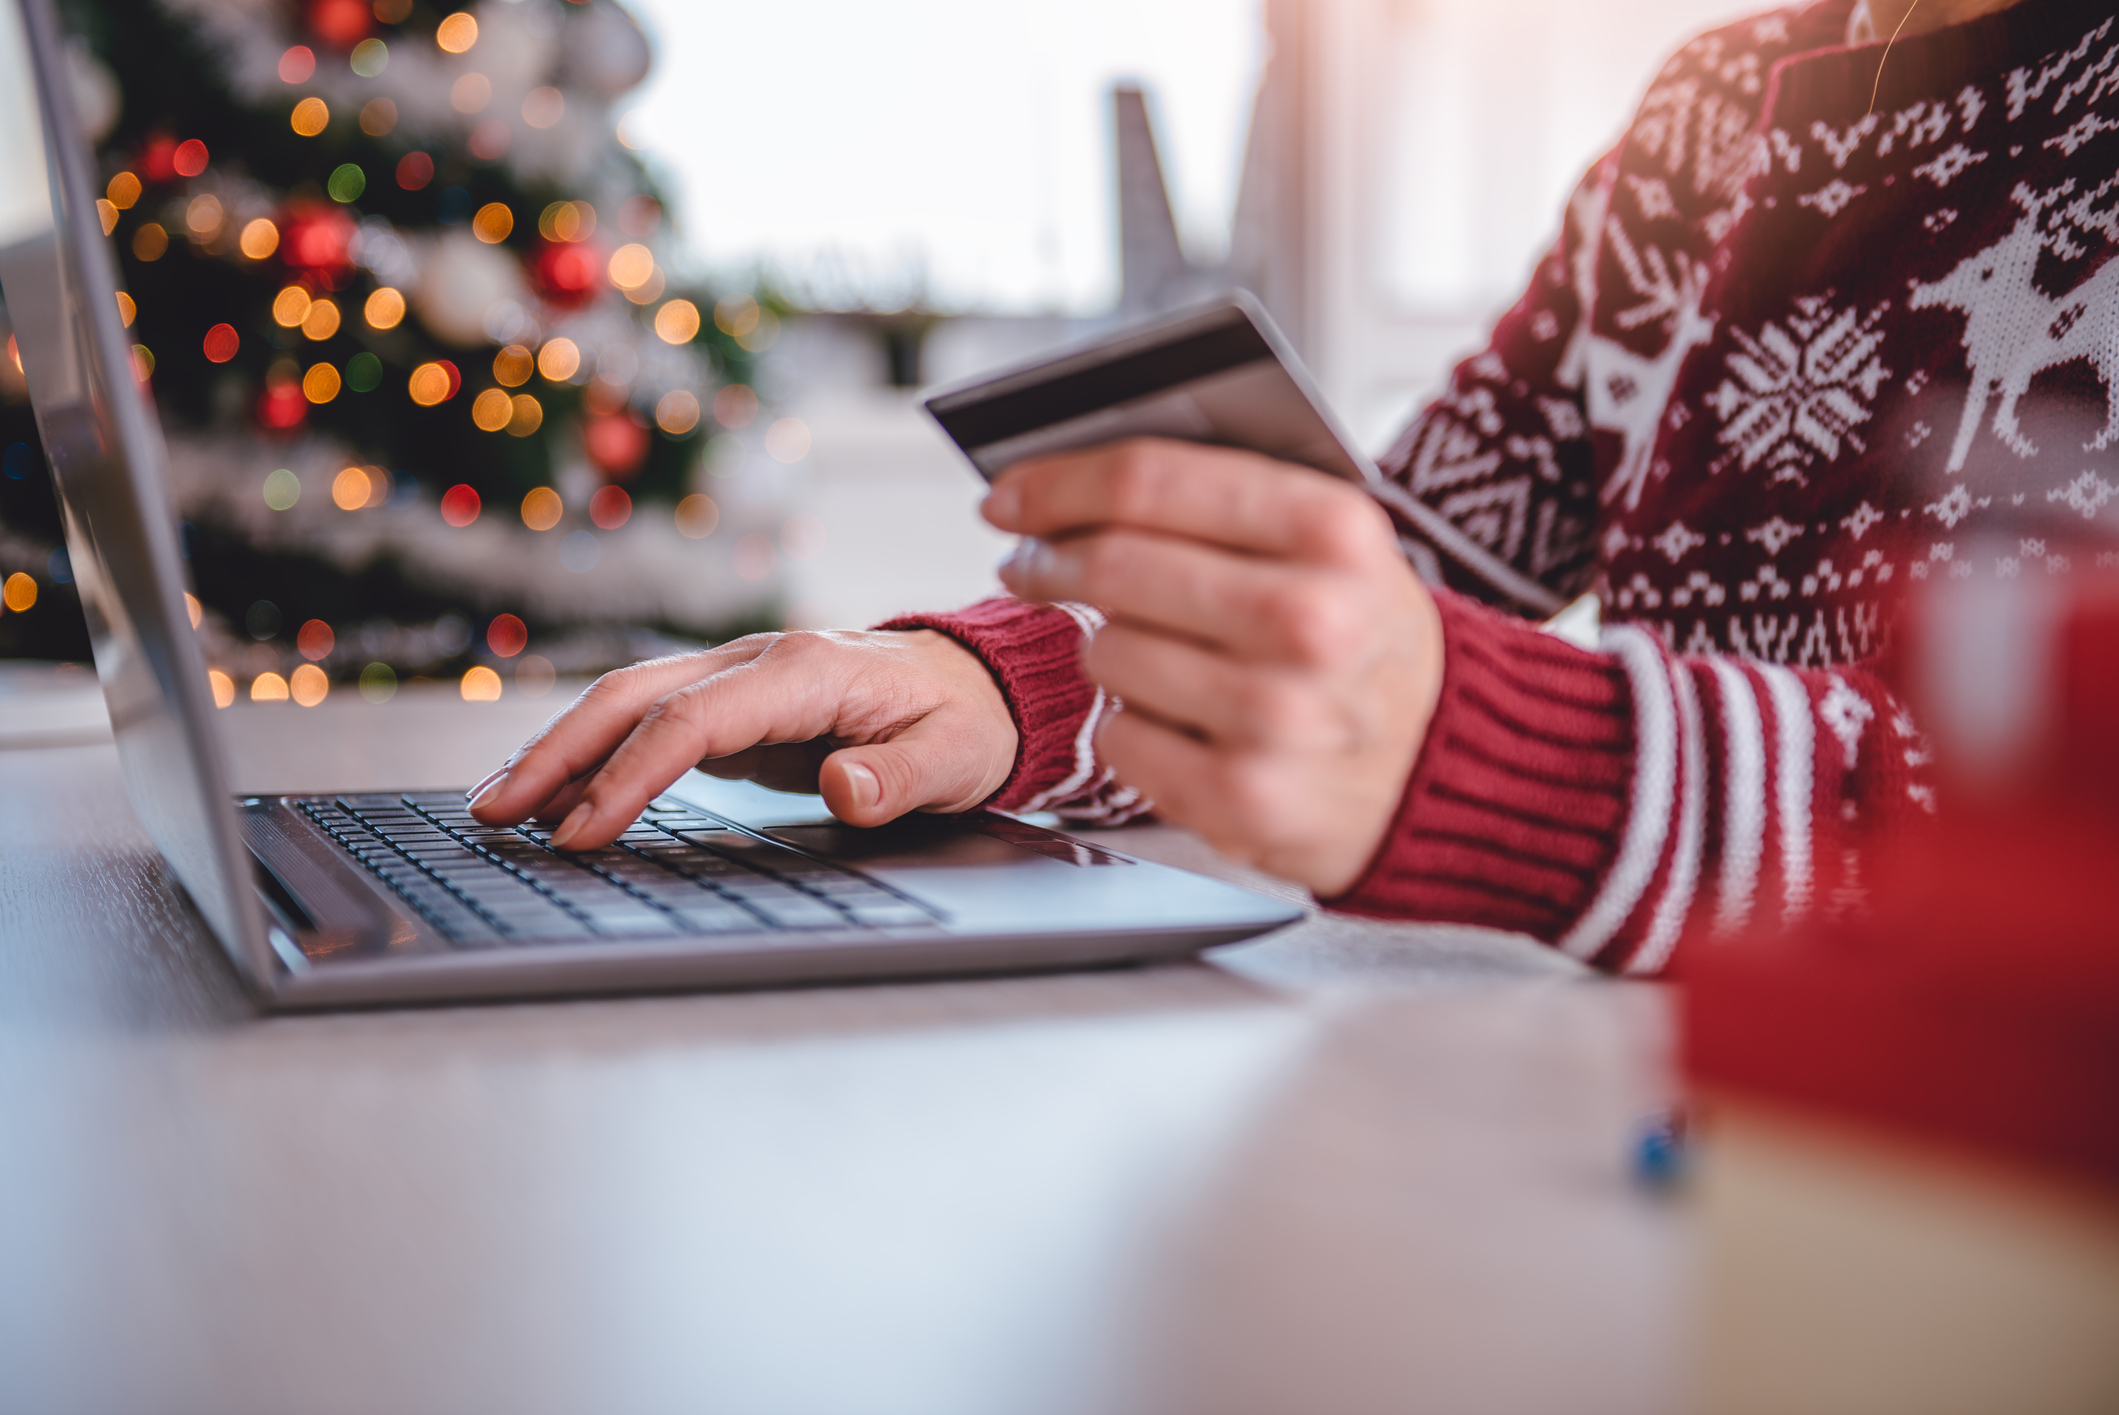 A person in a holiday sweater holding a credit card while typing on a laptop.